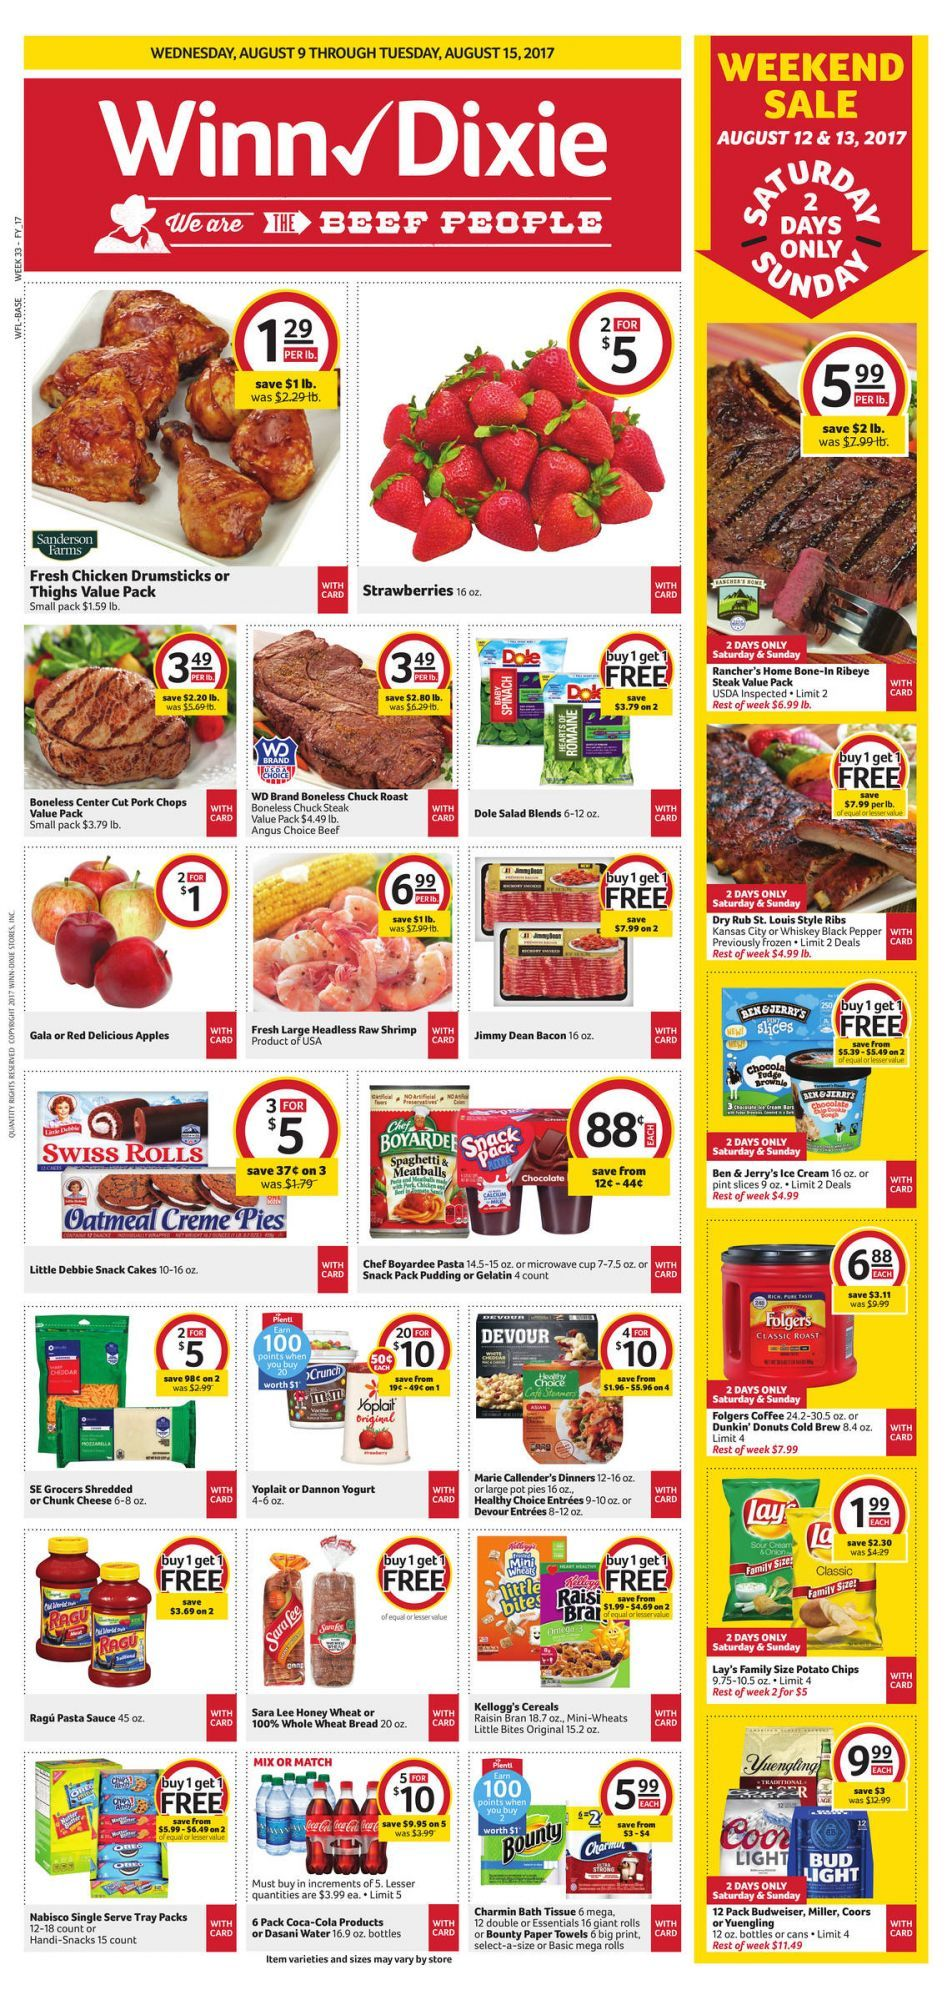 WinnDixie Weekly Ad August 9 15 us grocery and food savings